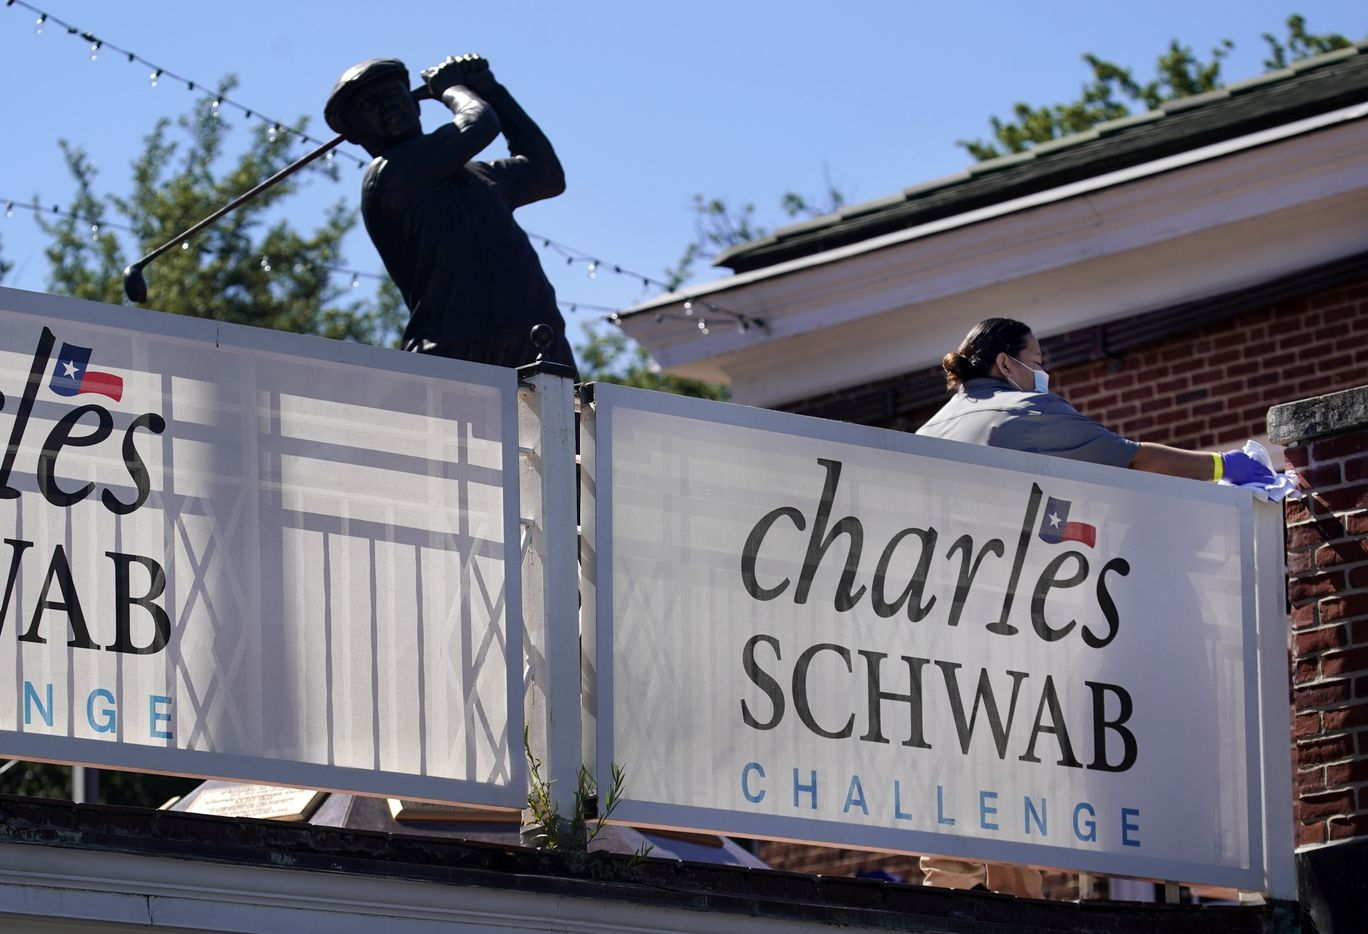 A woman cleans the railings near the Ben Hogan statue during the opening round of the Charles Schwab Challenge at the Colonial Country Club in Fort Worth, Thursday, June 11, 2020.  The Challenge is the first tour event since the COVID-19 pandemic began. (Tom Fox/The Dallas Morning News)